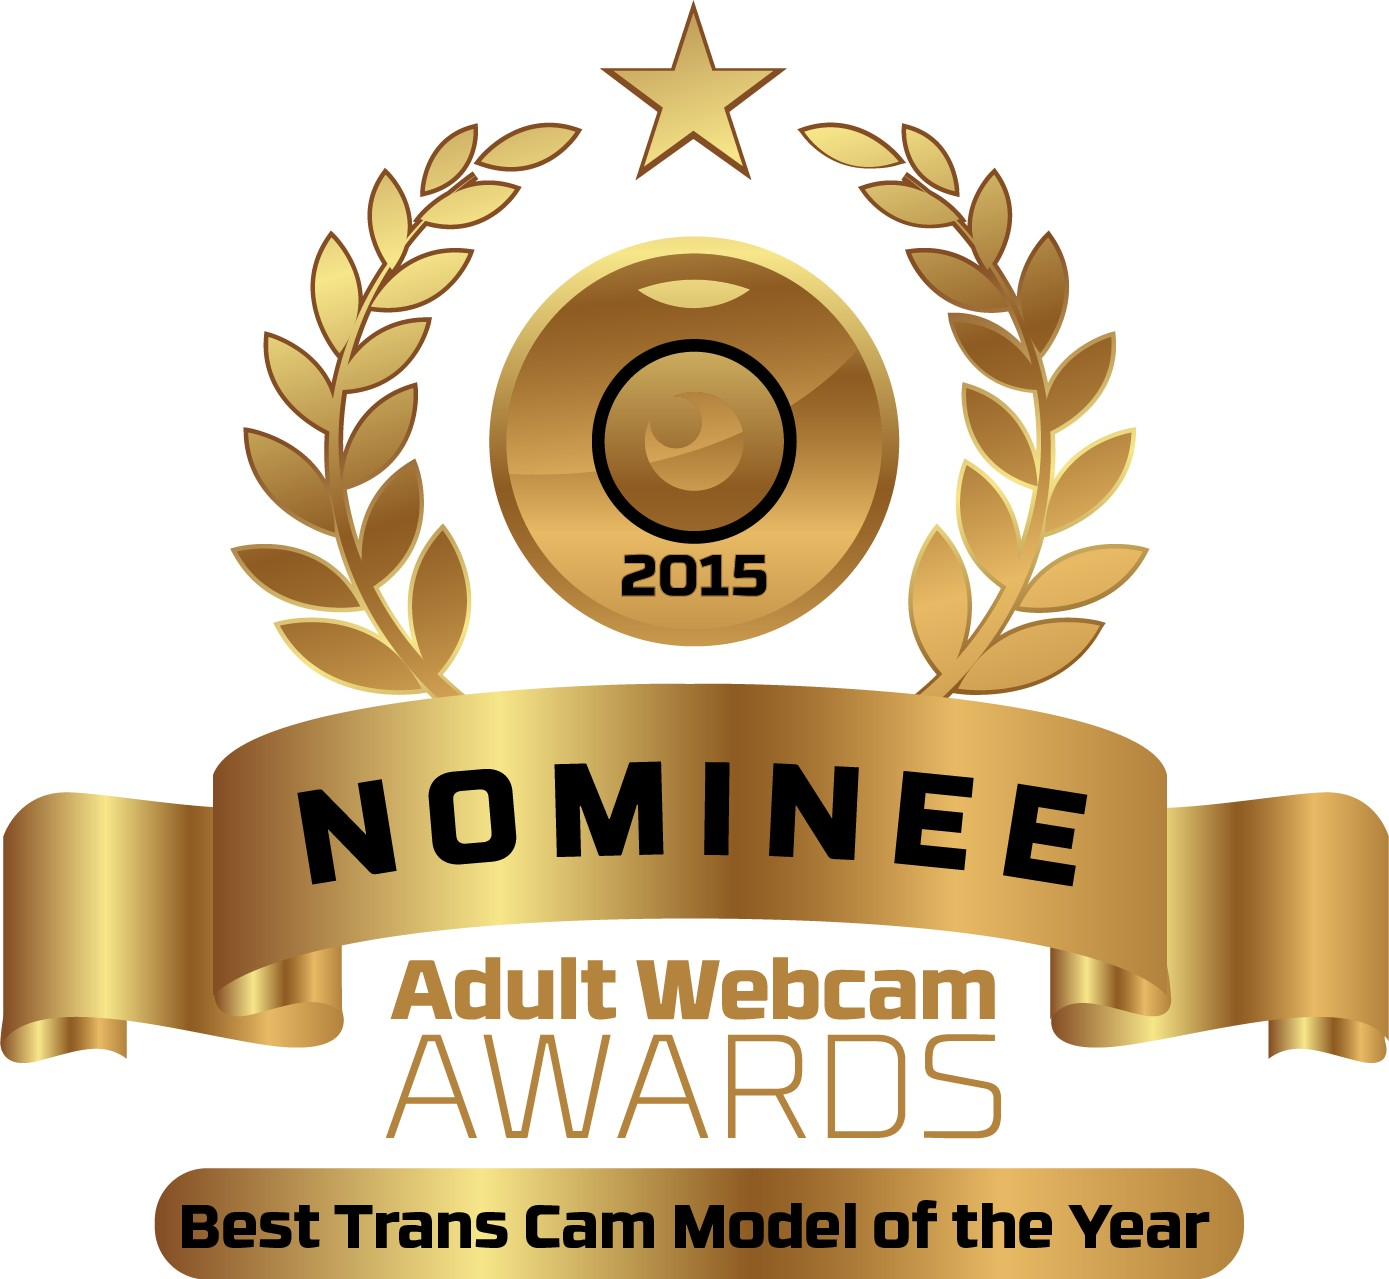 Best Trans Cam Model Nominee